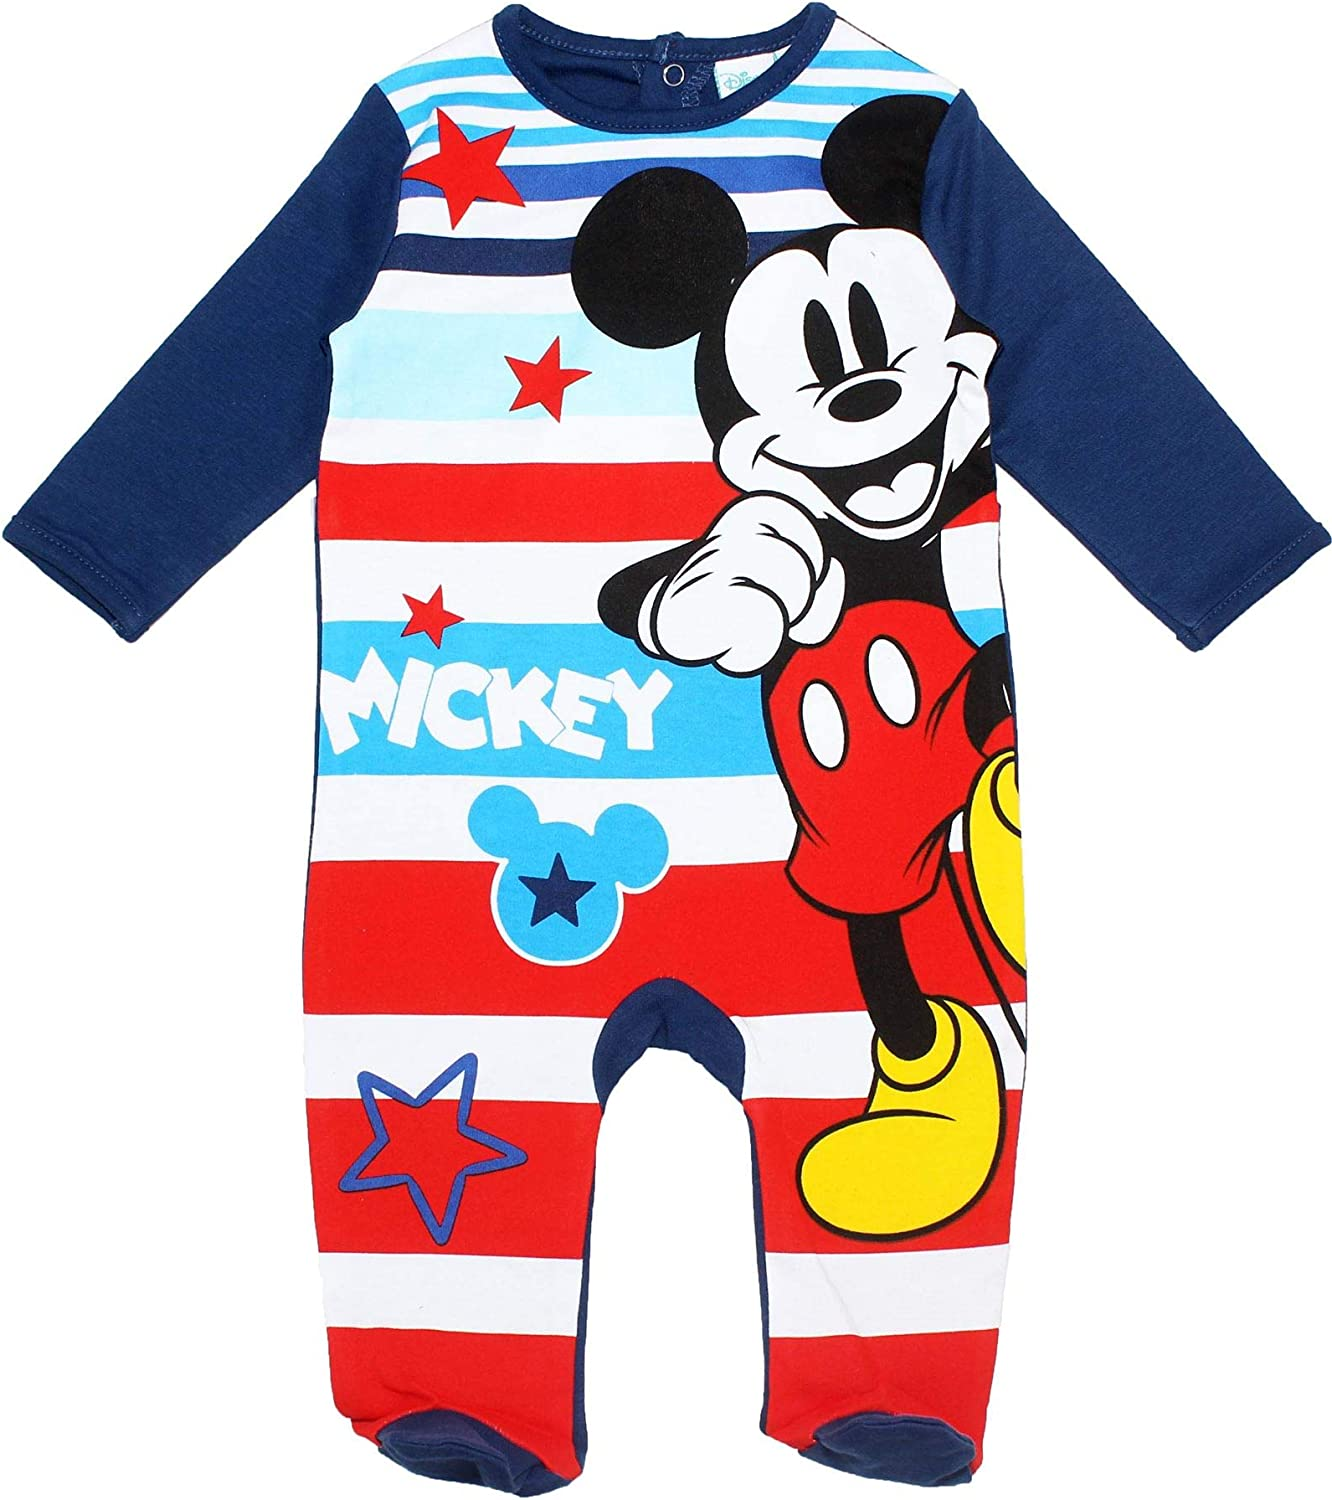 White Shirt /& Navy Blue Shorts Set for Baby Boys Mickey Mouse /& Friends Disney